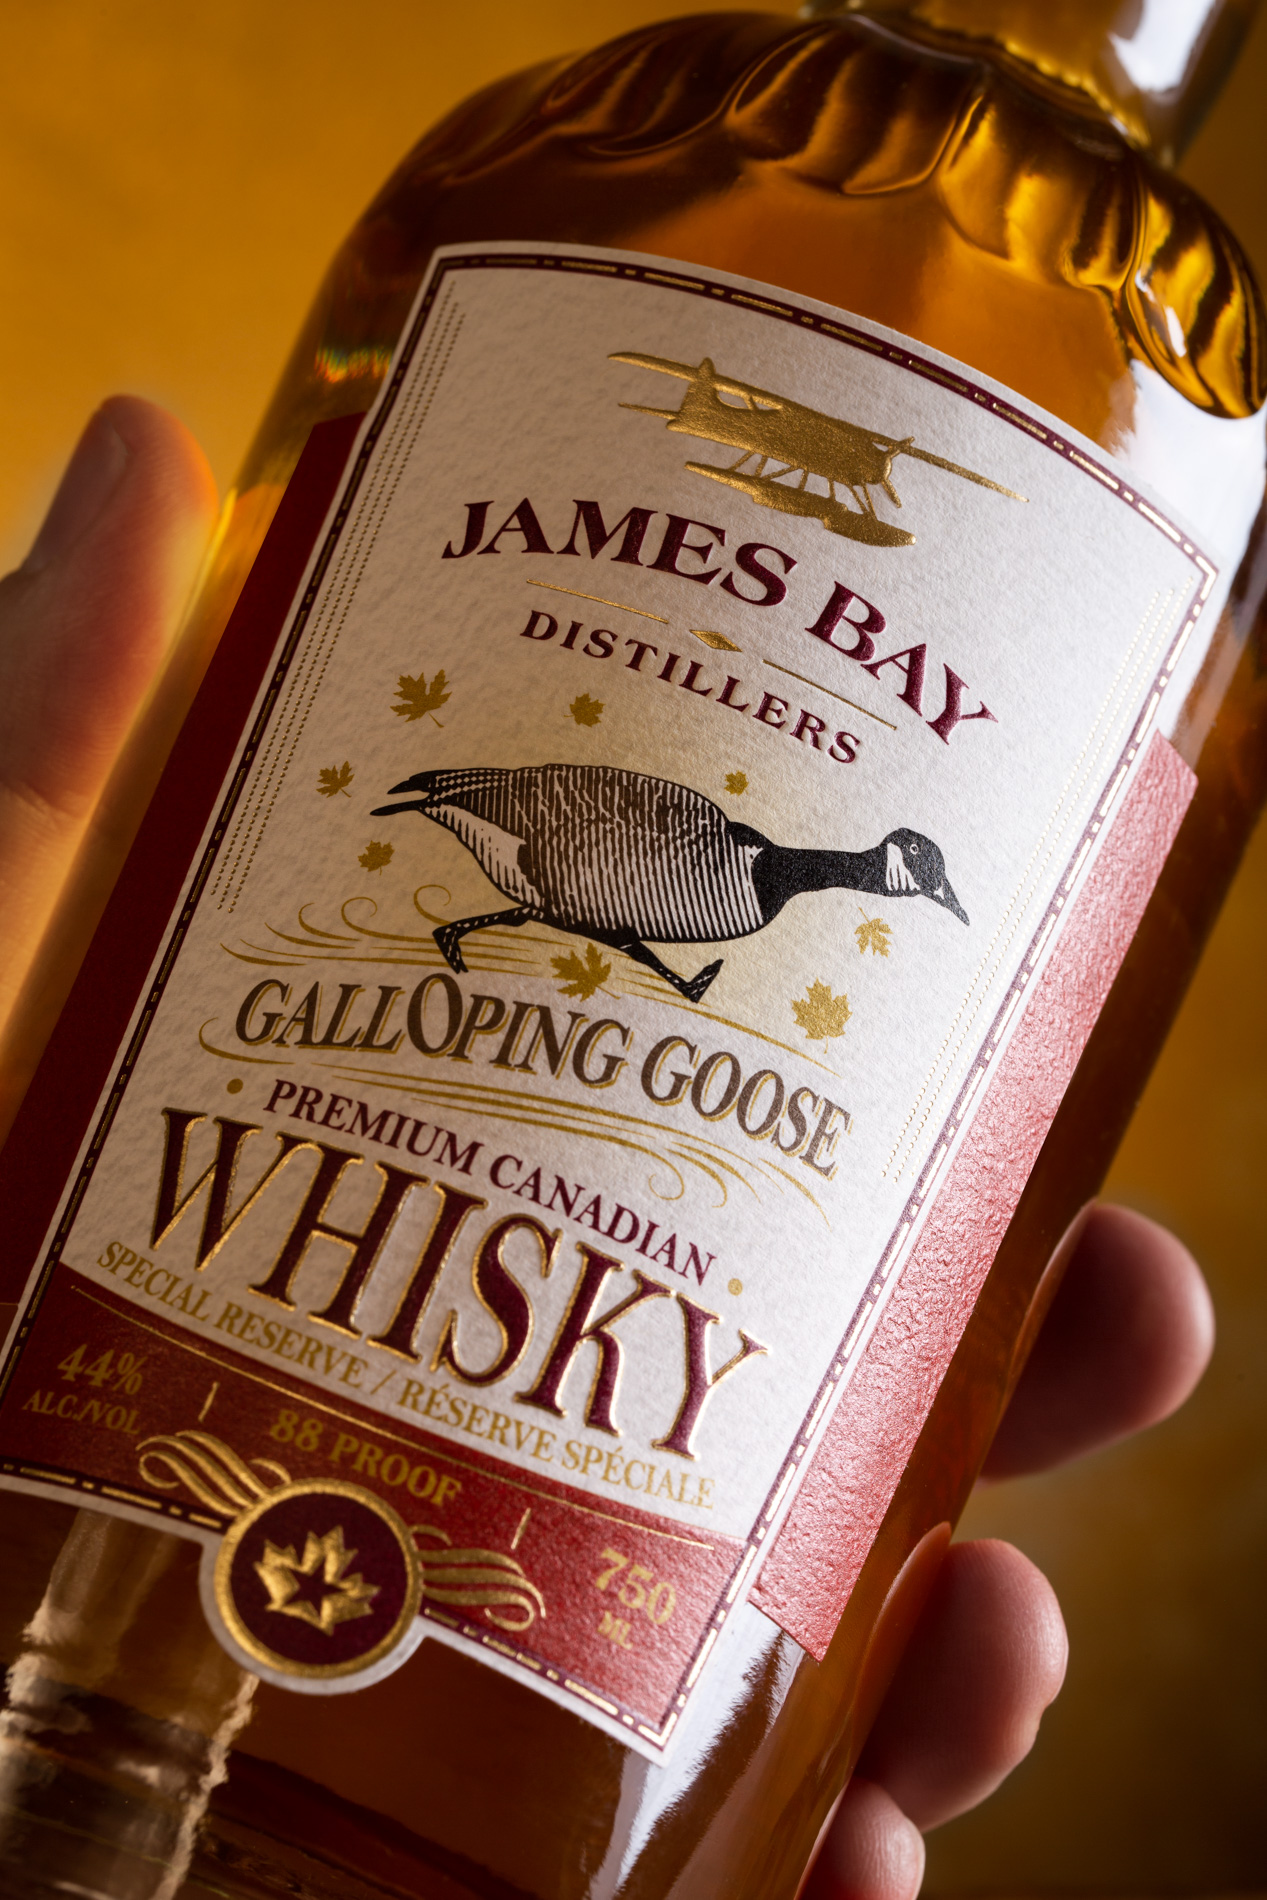 James Bay Distillers: Photo of Galloping Goose Premium Canadian Whisky - James Bay Distillers (uploaded by company)